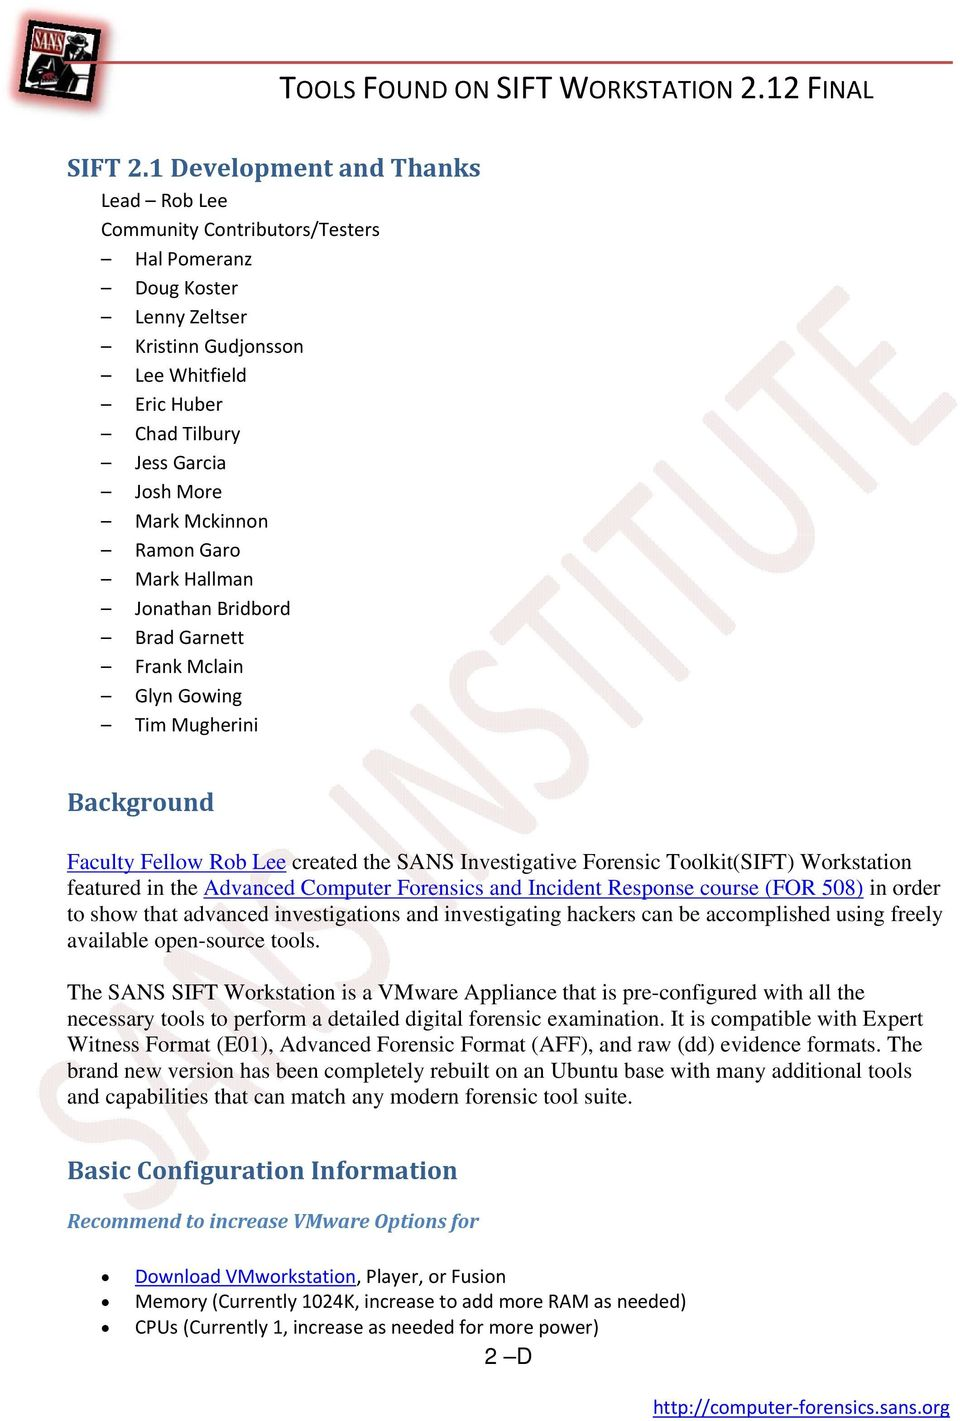 TOOLS FOUND ON SIFT WORKSTATION 2 12 FINAL - PDF